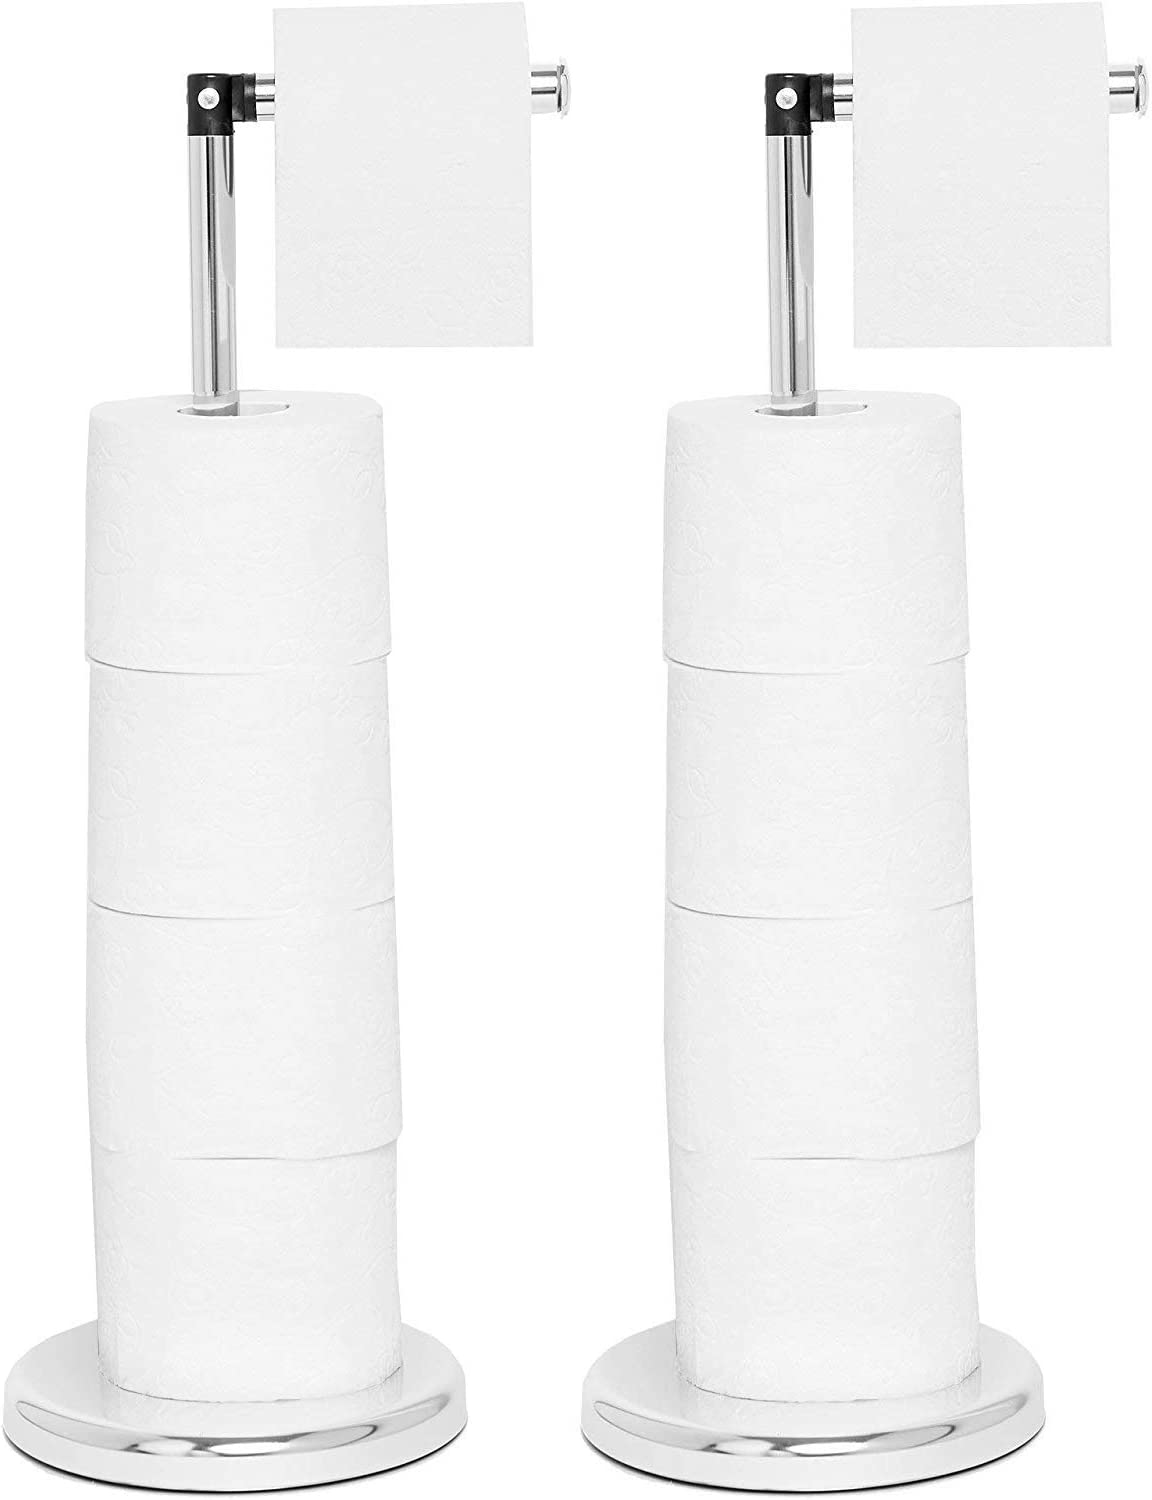 Freestanding Toilet Roll Holder - Stylish & Practical Design by Pristine® (2 Pack Chrome)